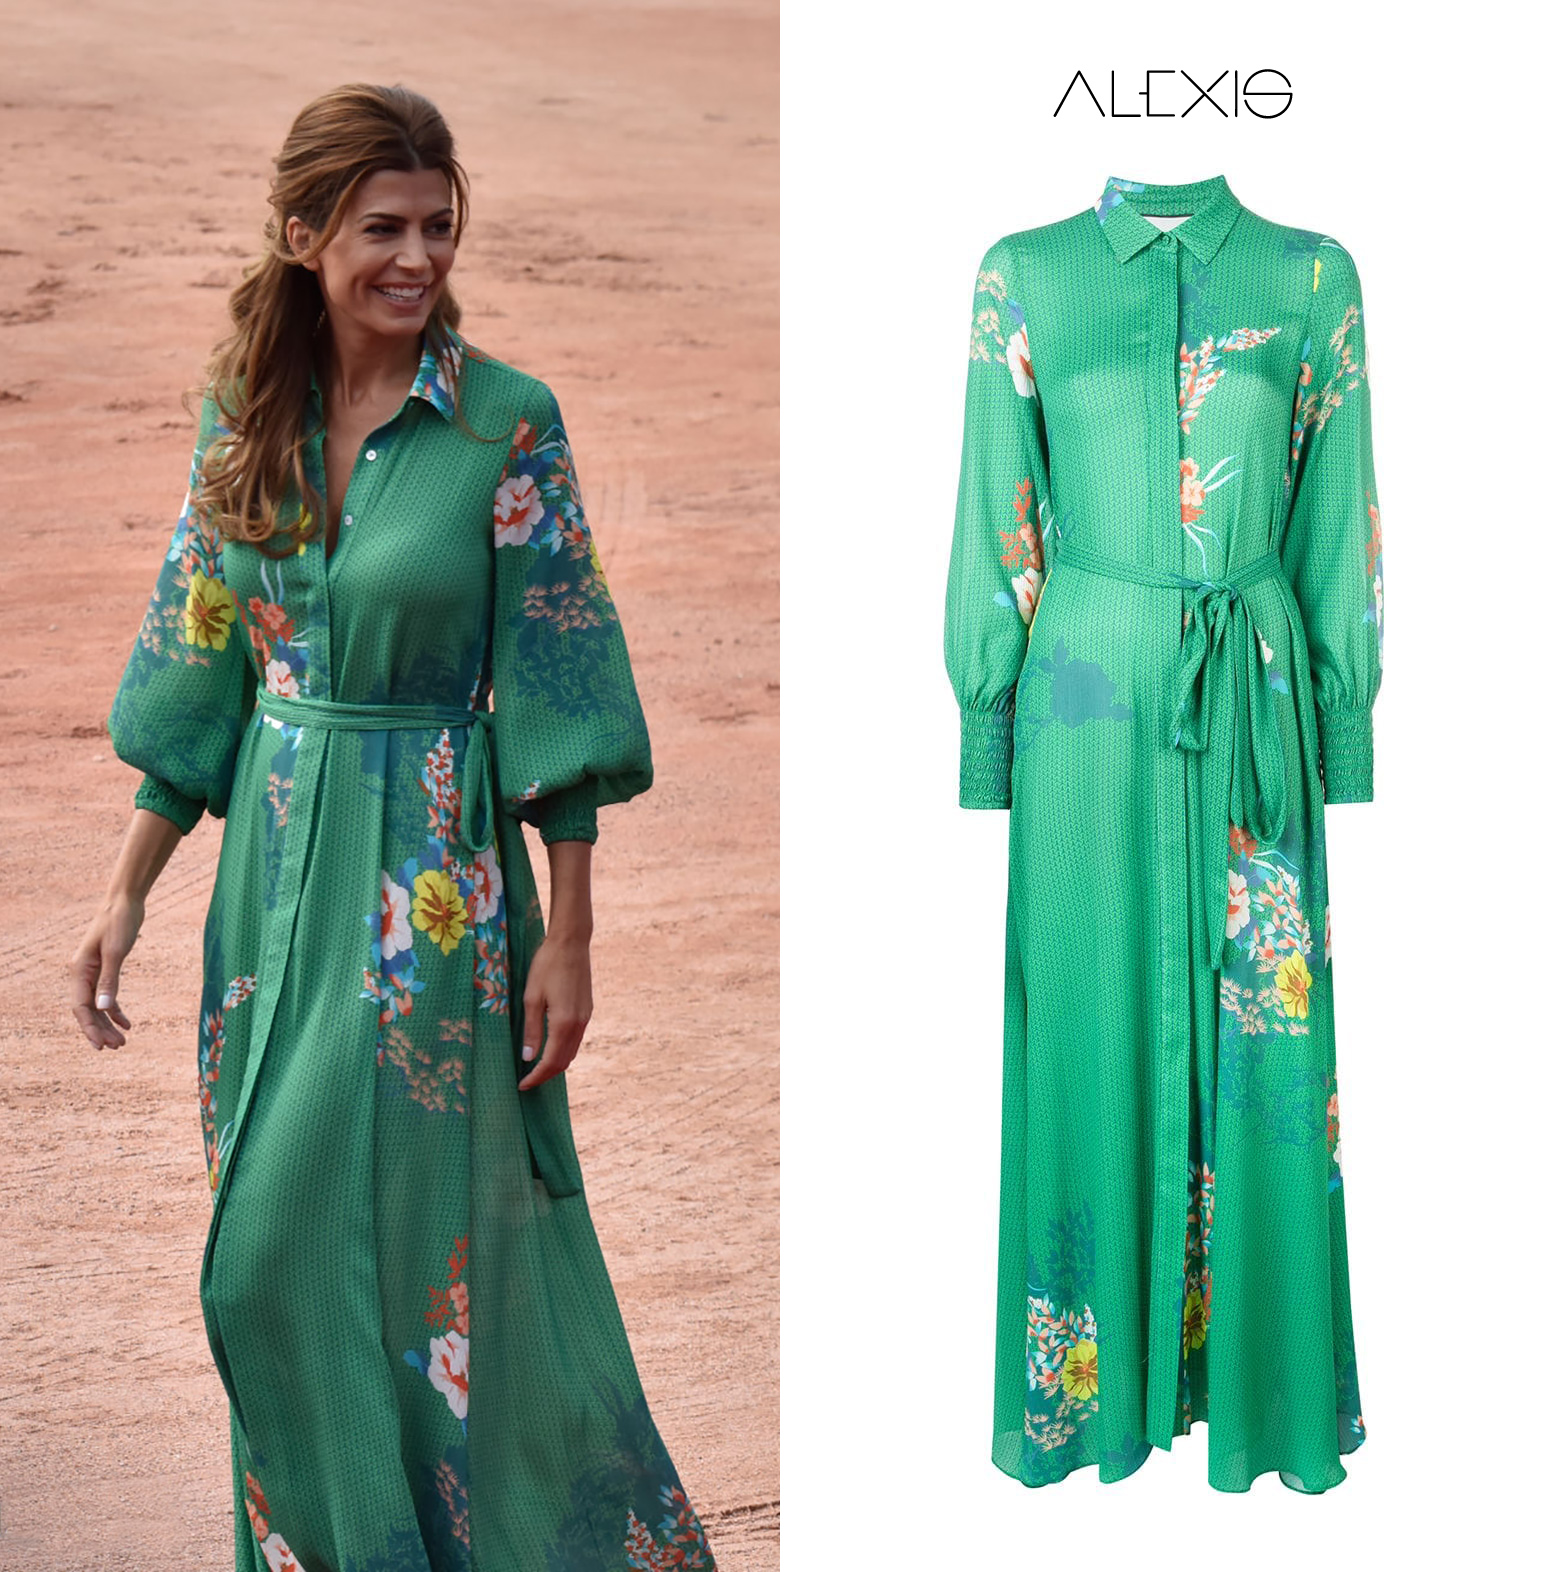 Juliana_Awada_India_Vestido_Verde_Estampado_Green_Yadira_Dress.jpg